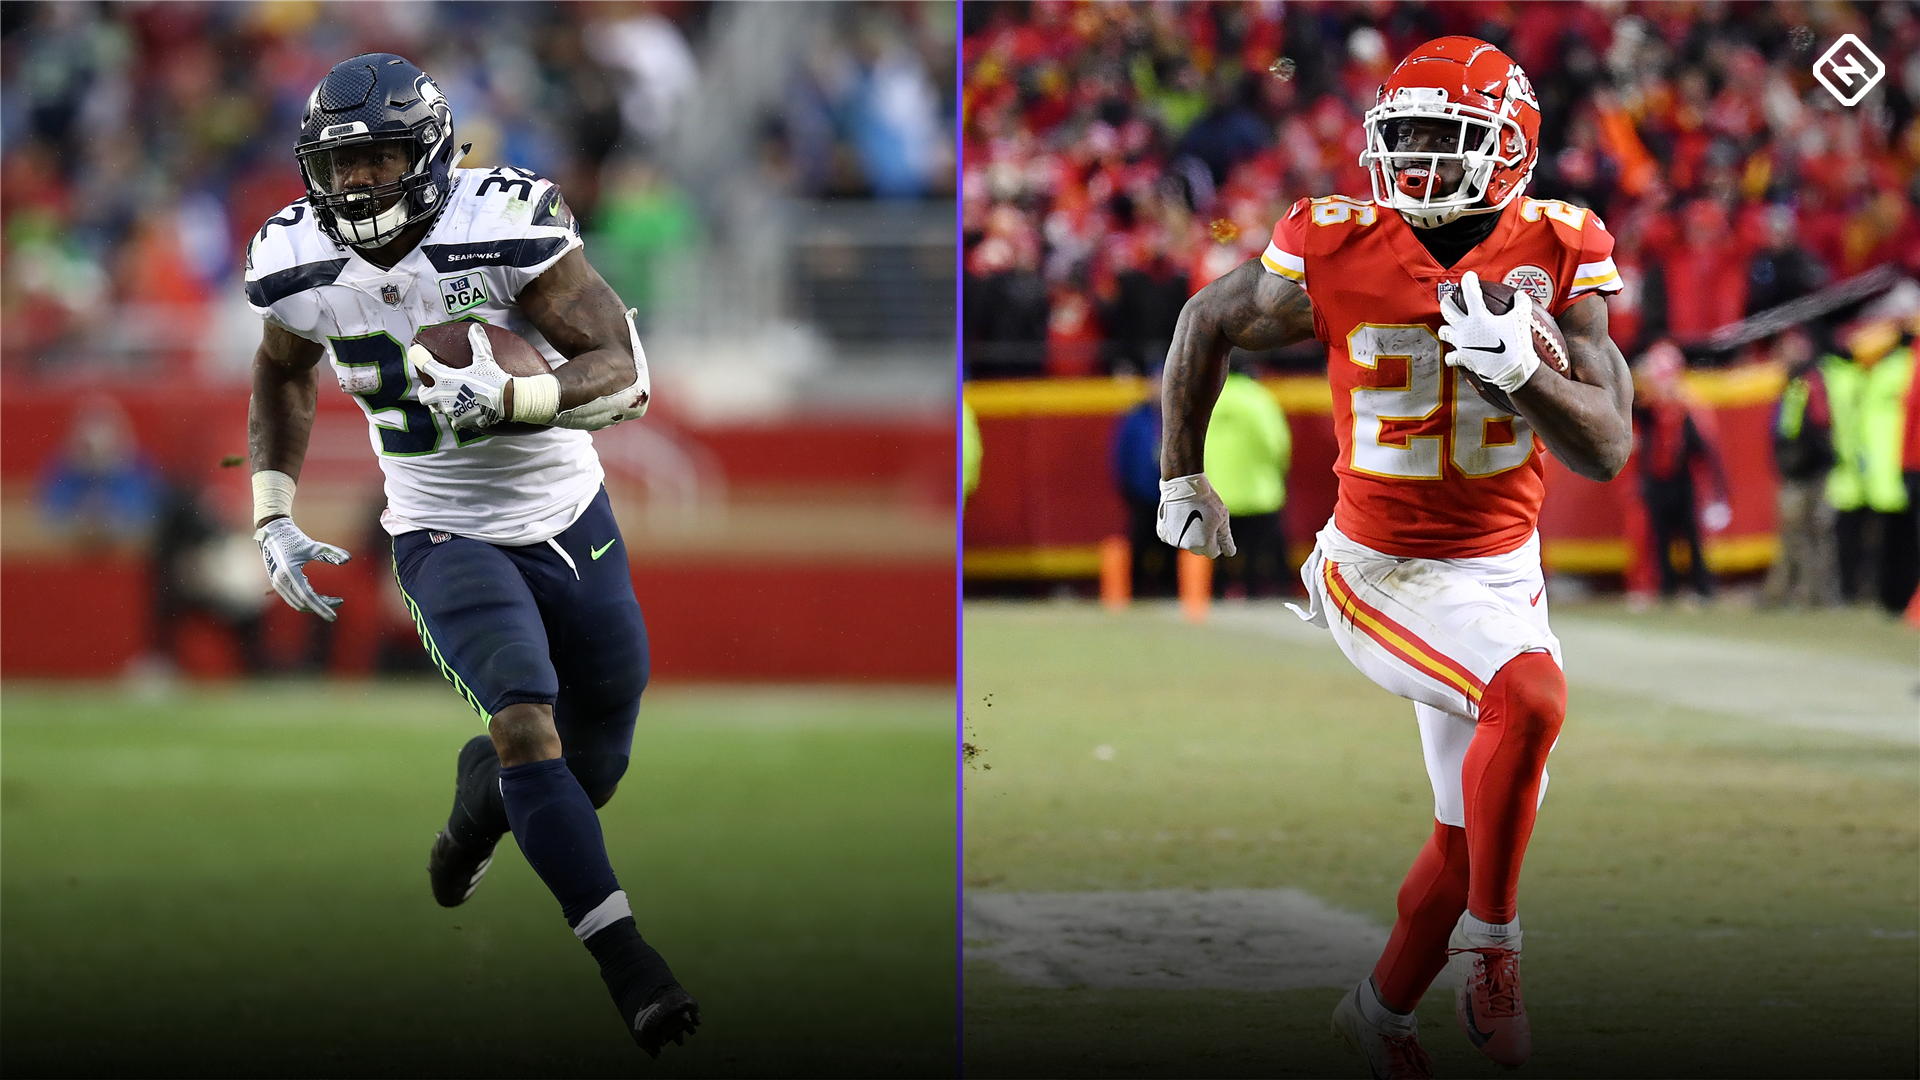 Finding 2019 fantasy football sleepers, busts with RB consistency rankings